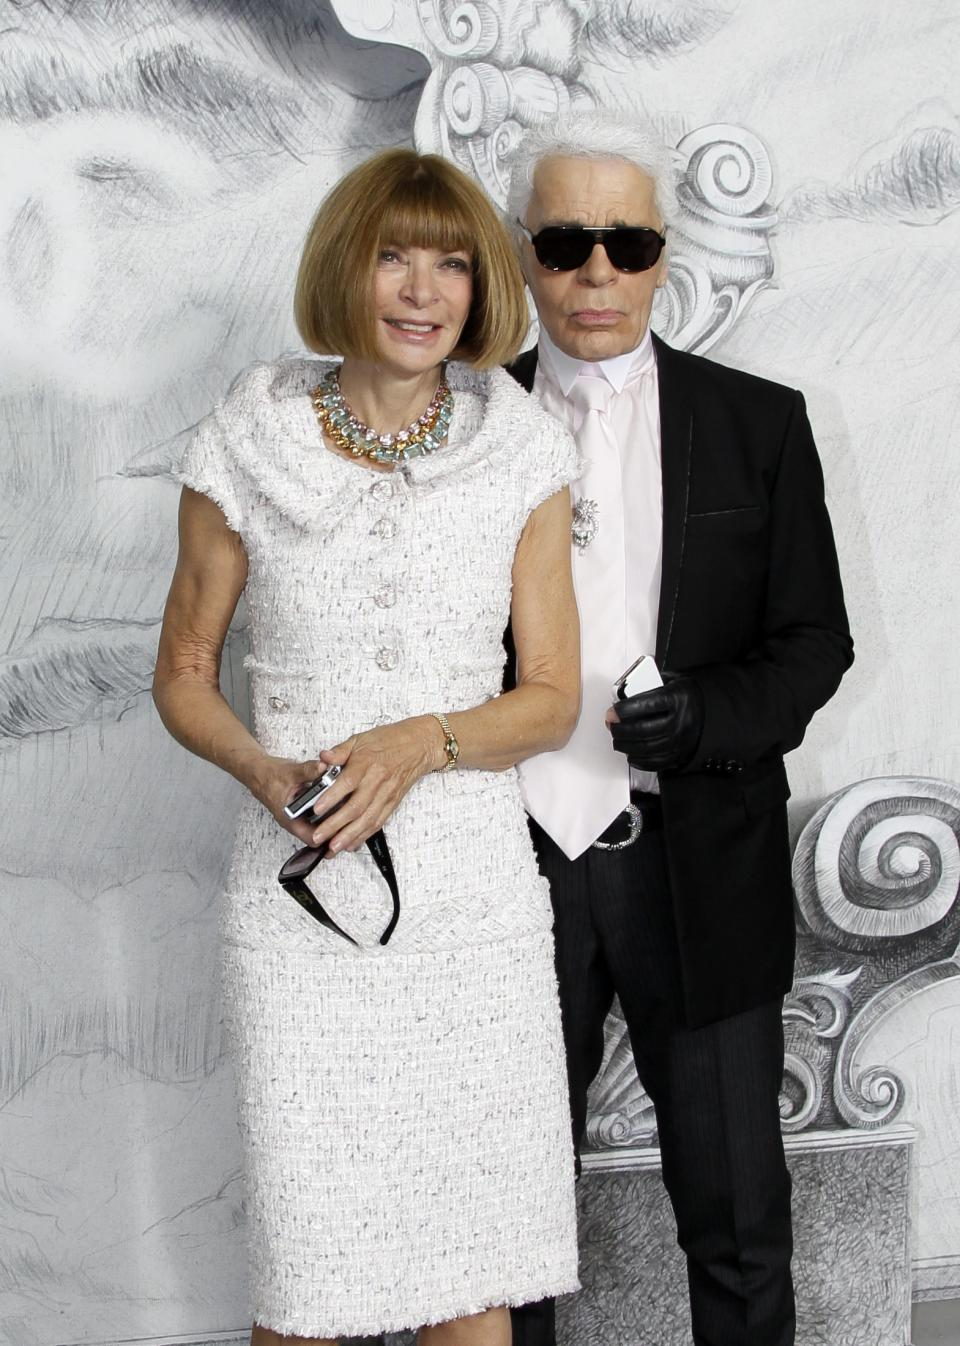 Fashion designer Karl Lagerfeld, right, and editor-in-chief of American Vogue Anna Wintour arrive for the Chanel Women's Fall Winter 2013 haute couture fashion collection in Paris, France, Tuesday, July 3, 2012. (AP Photo/Francois Mori)